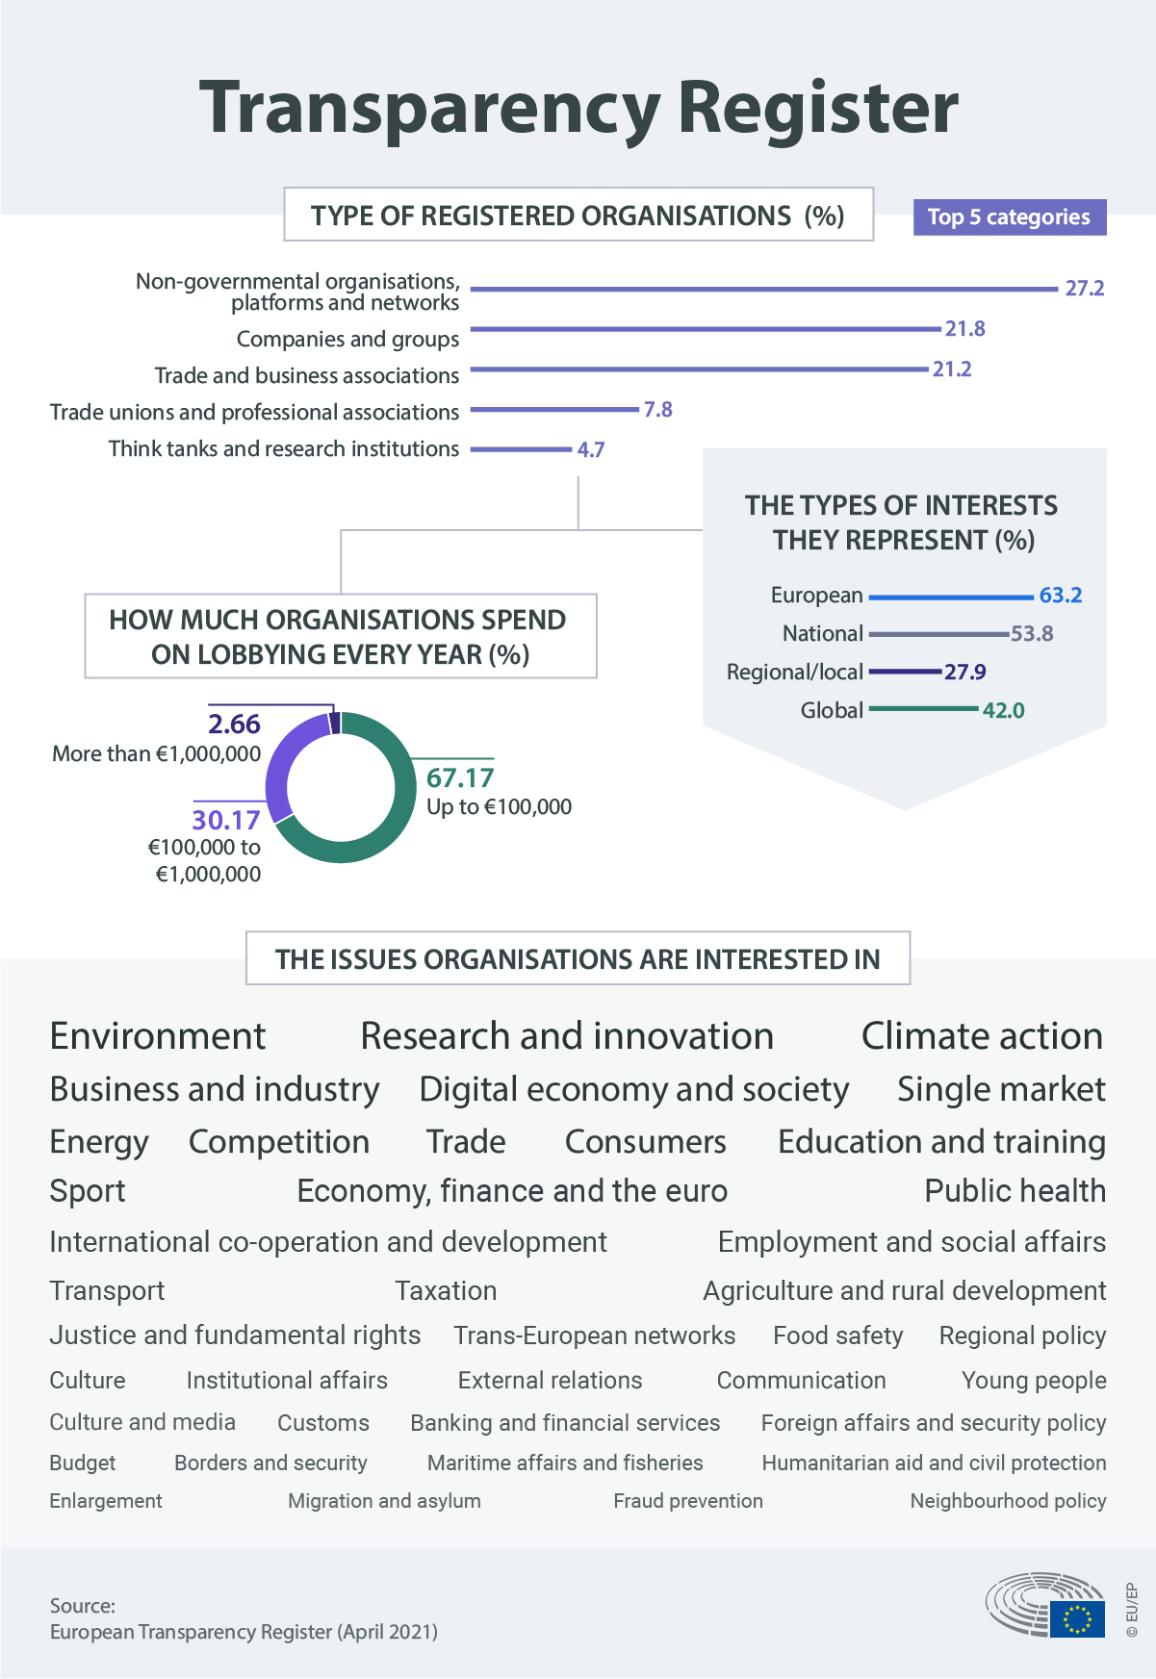 infographic illustration on the type of registered organisations on the Transparency Register